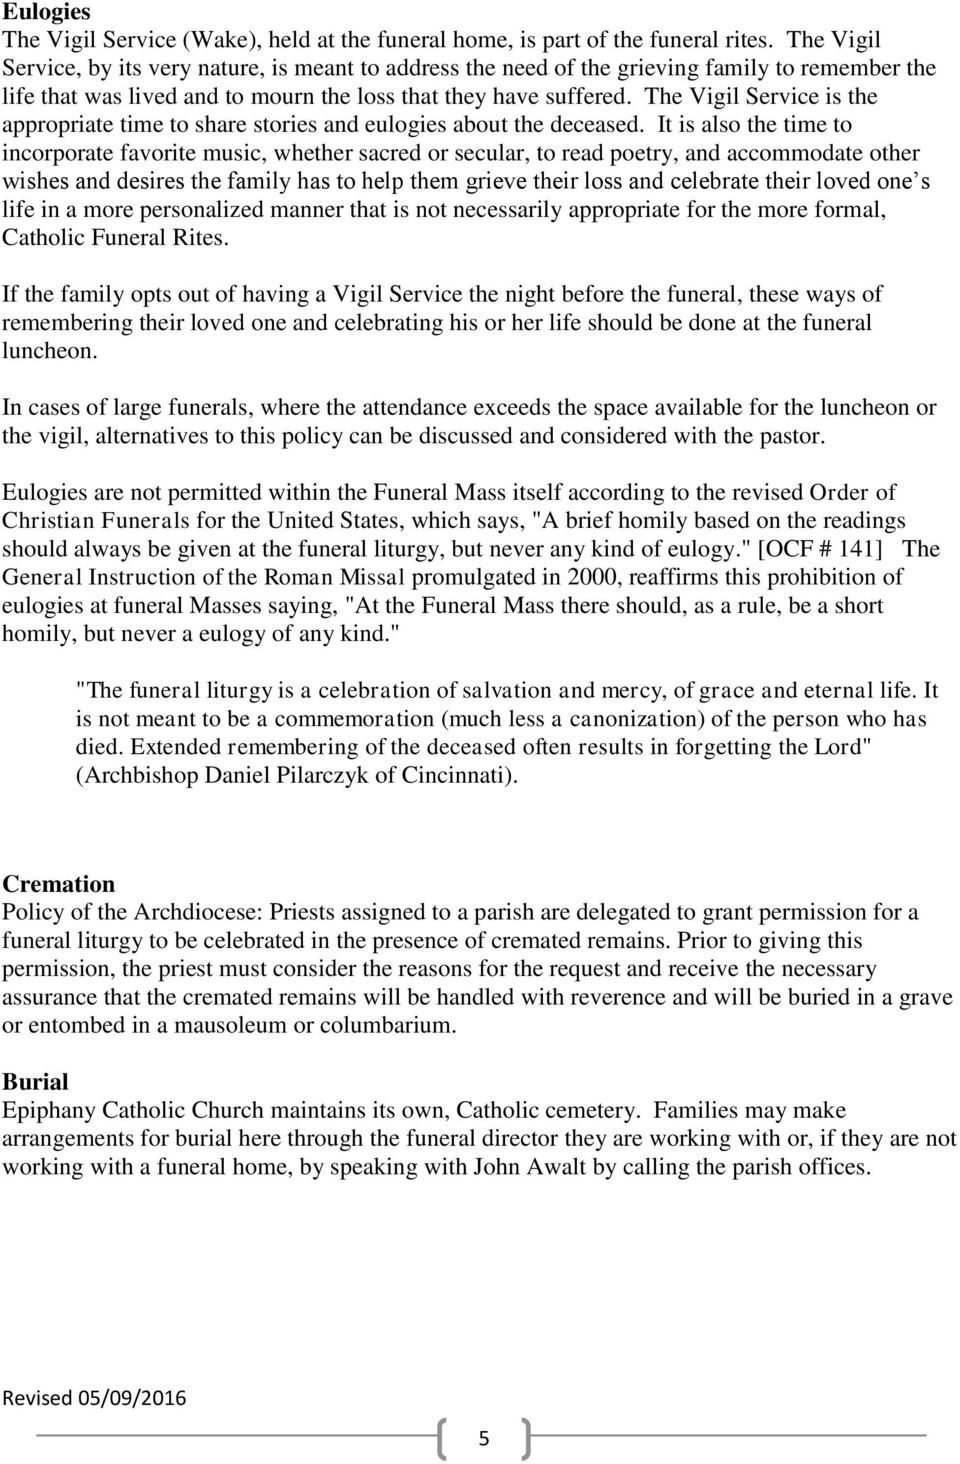 Funeral Procedures and Protocol for Epiphany Catholic Church - PDF